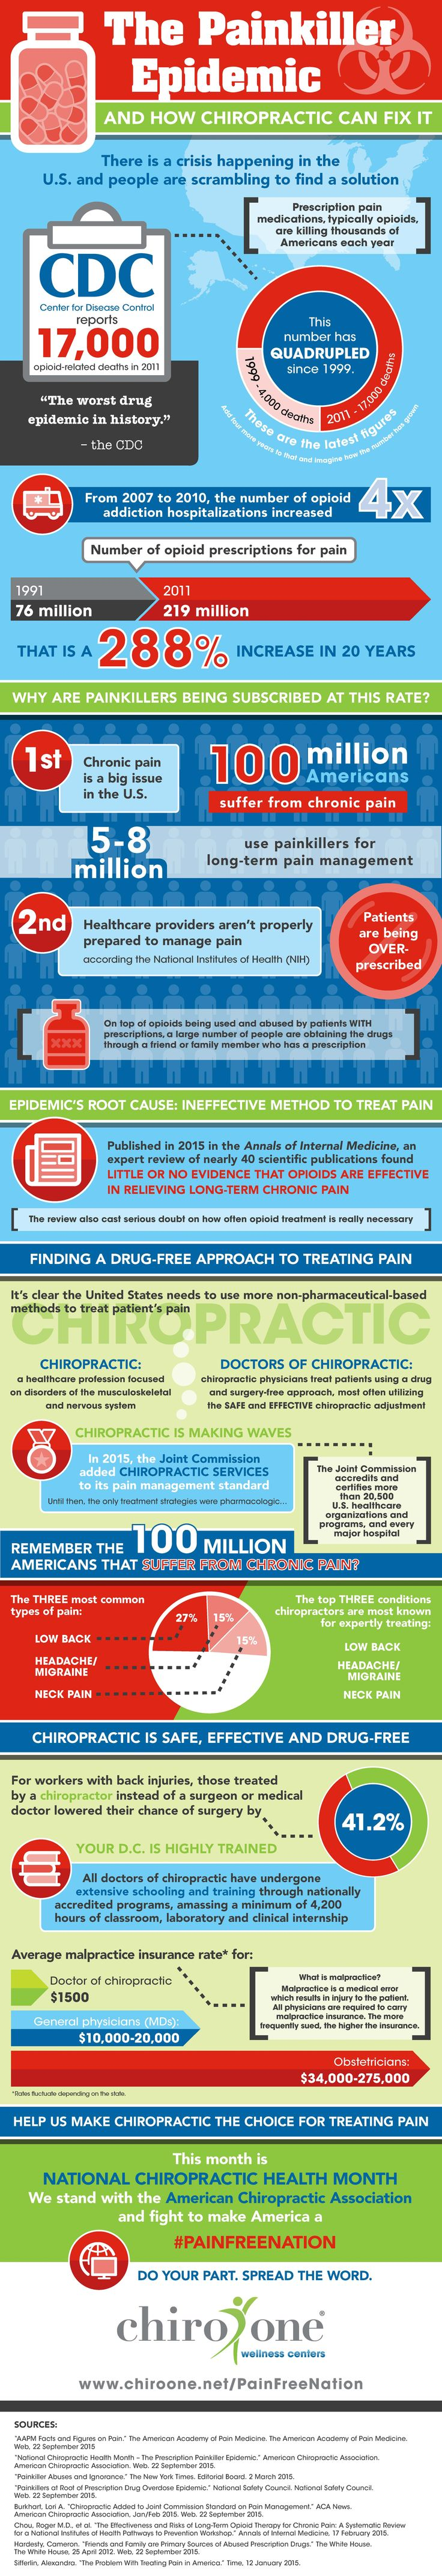 [INFOGRAPHIC] The prescription painkiller epidemic -- and an overlooked solution. #painfreenation #chronicpain #prescriptionpainkillers| Chiro One Chiropractic Wellness Centers